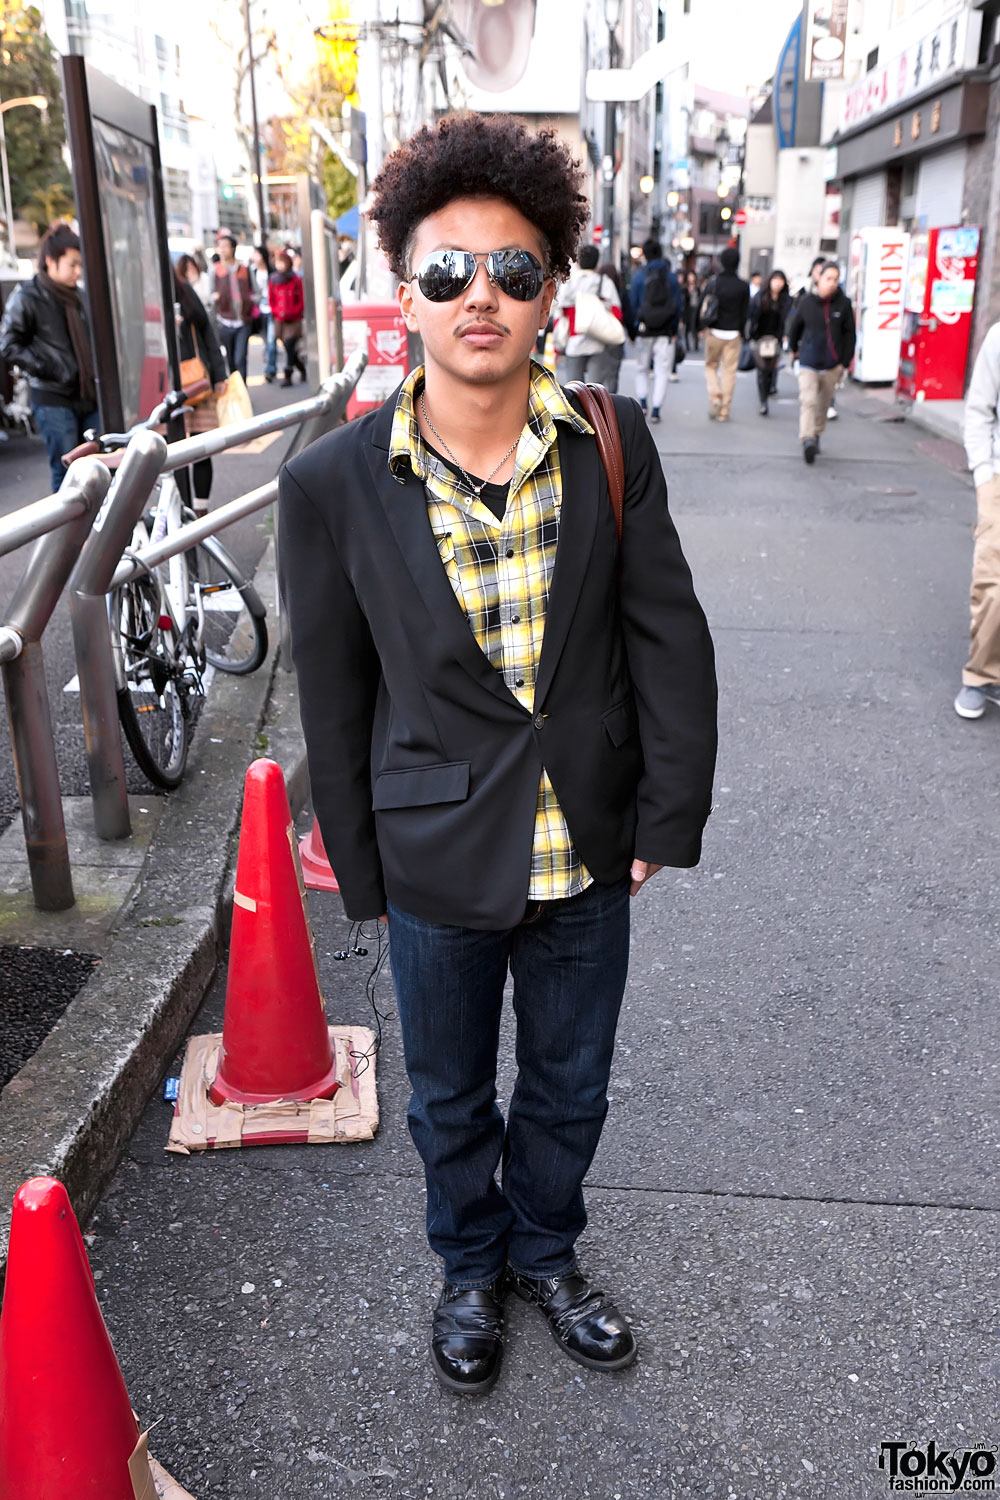 Japanese Guy With Curly Hairstyle Amp Addictive Bag In Harajuku